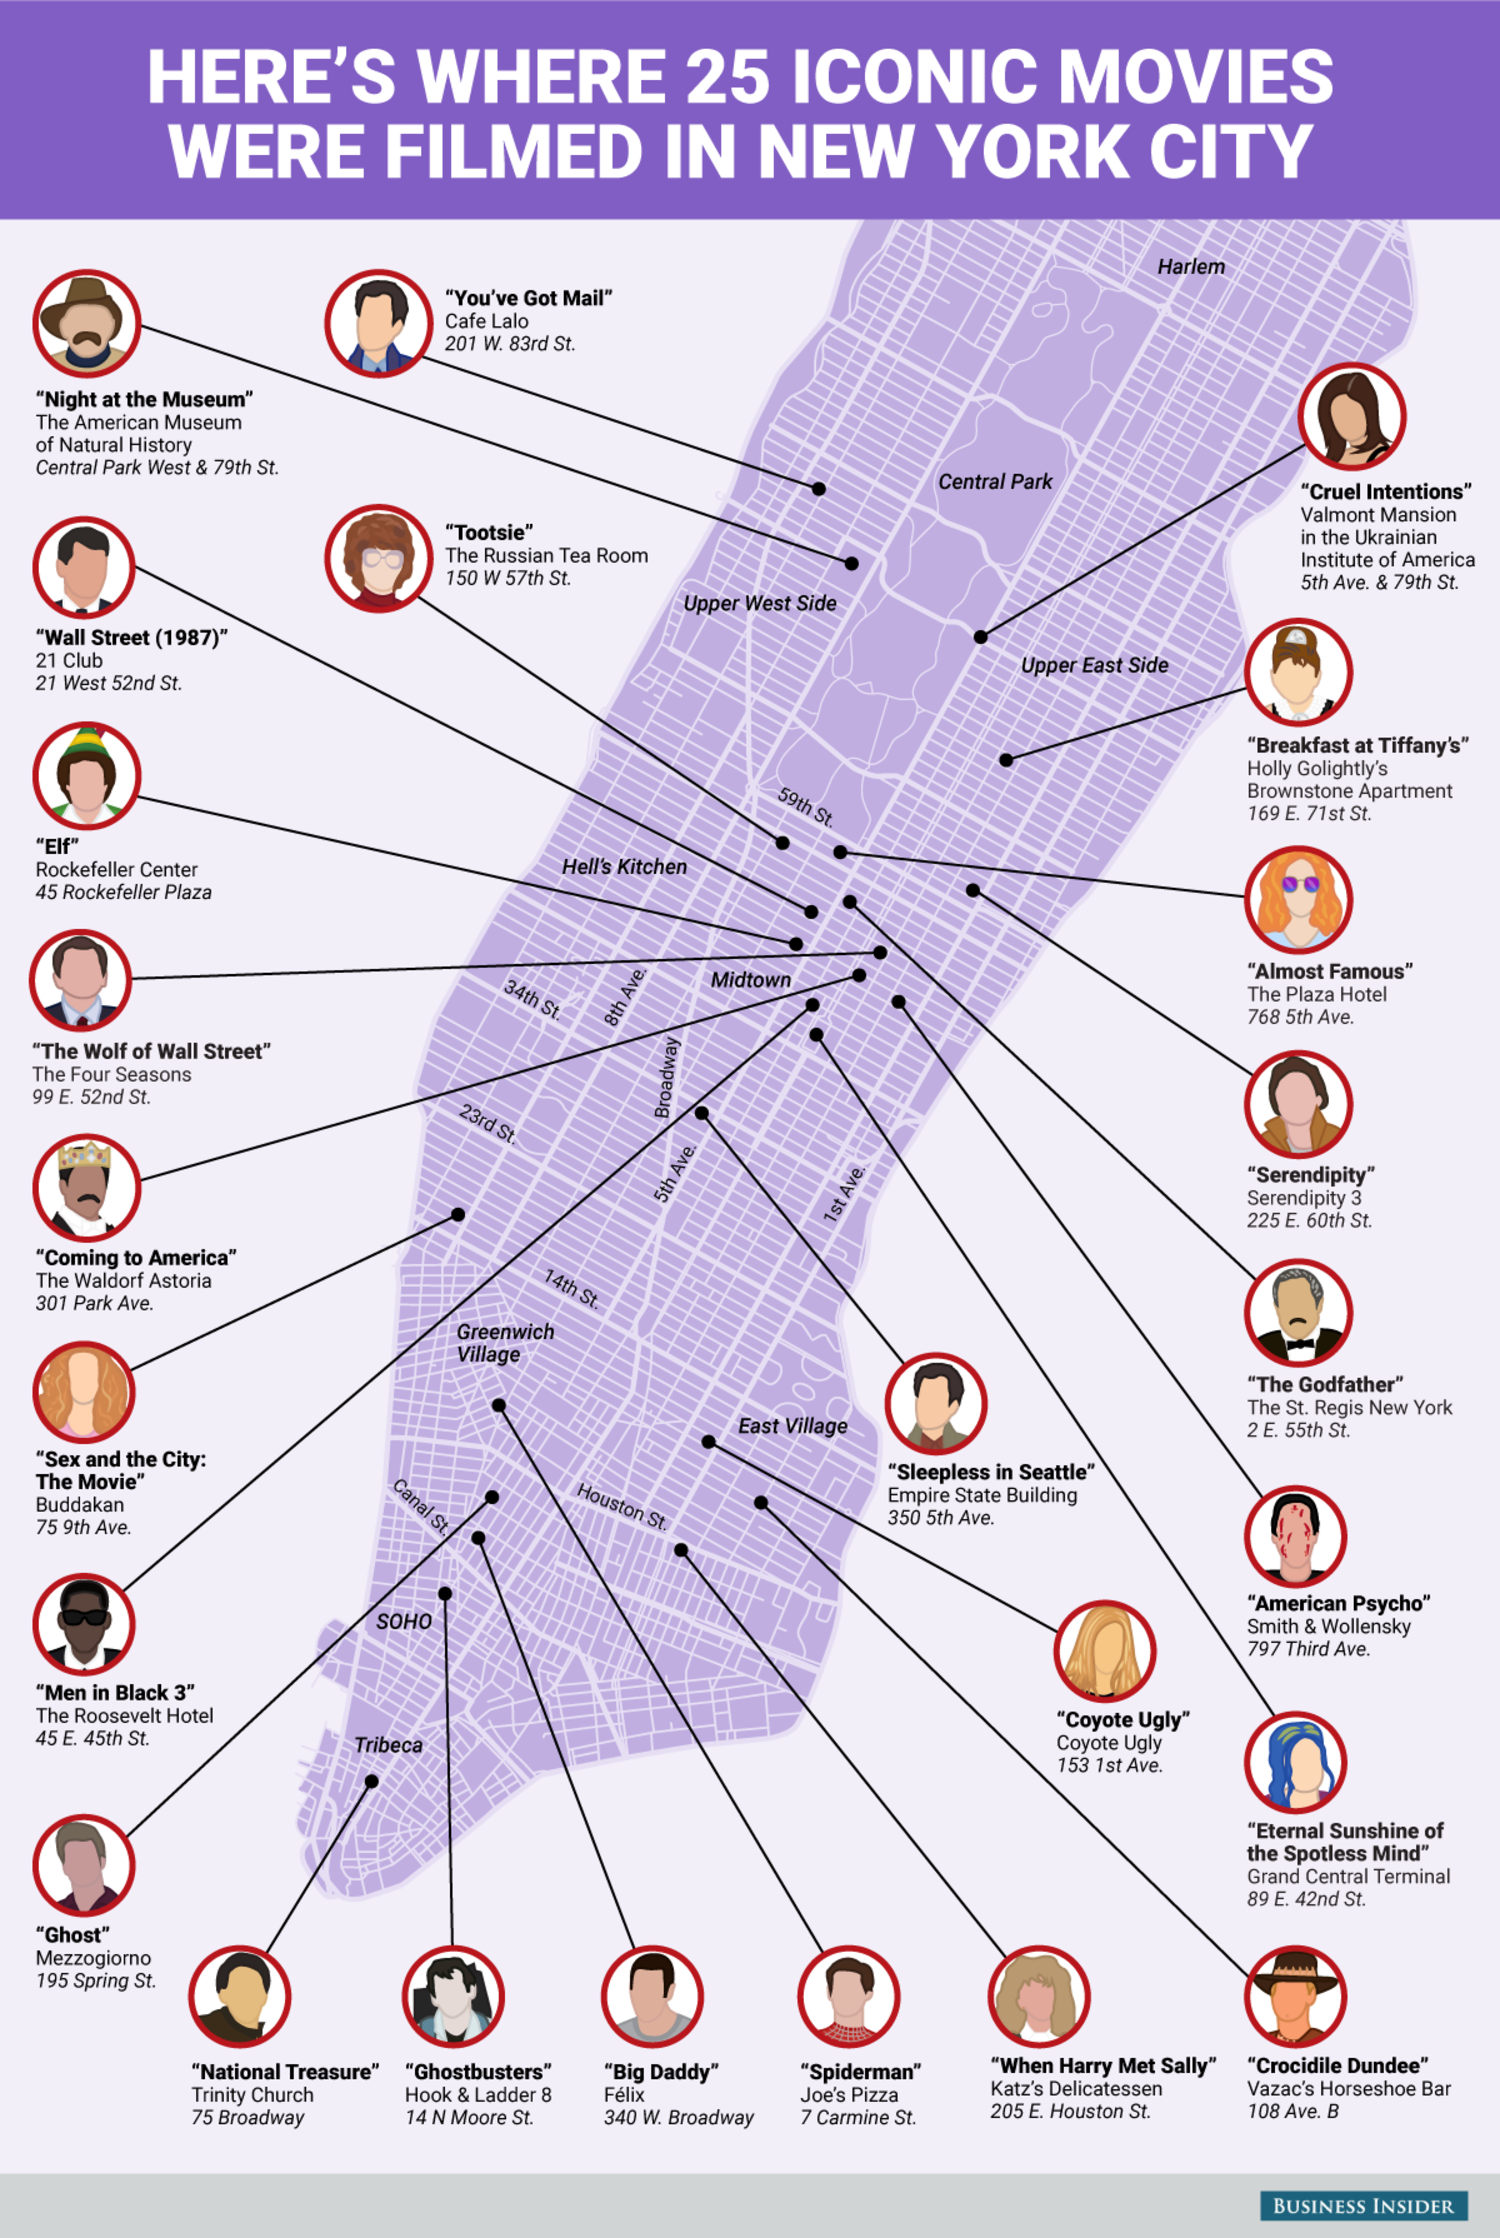 This map shows where 25 iconic movies were filmed in Manhattan